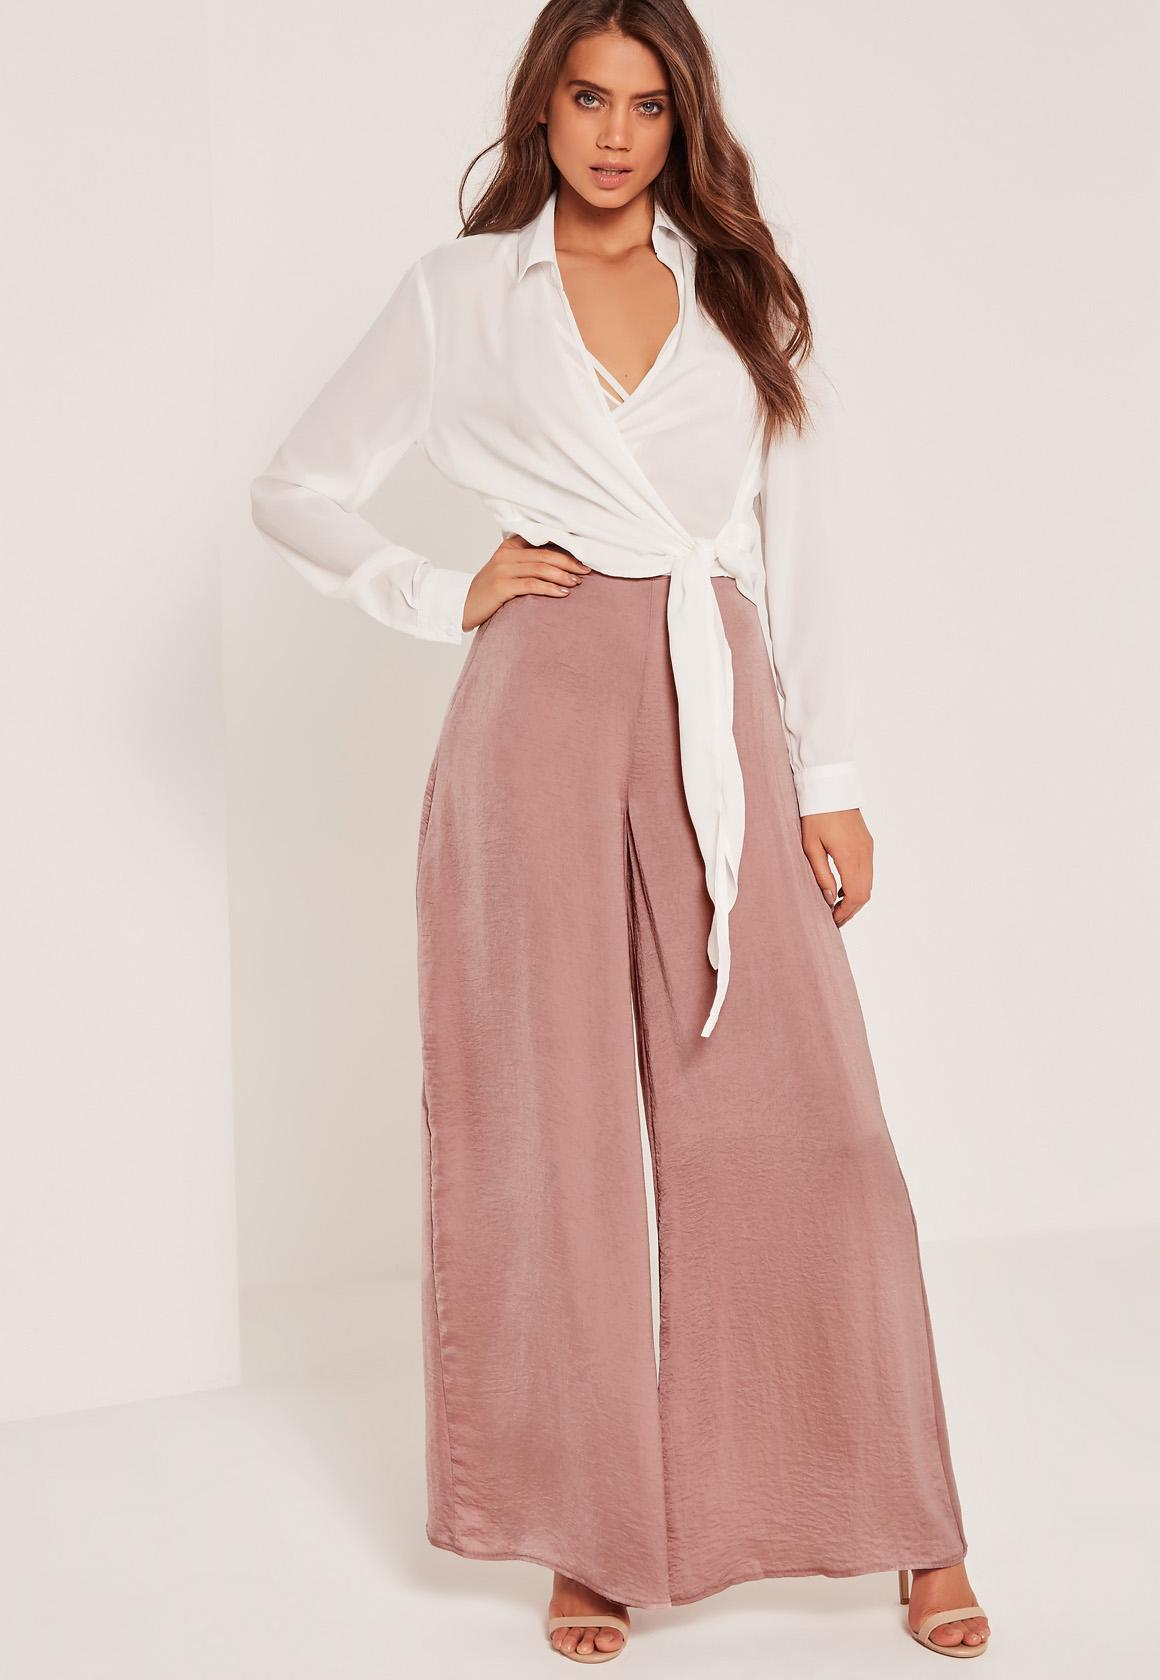 How to shop for palazzo trousers